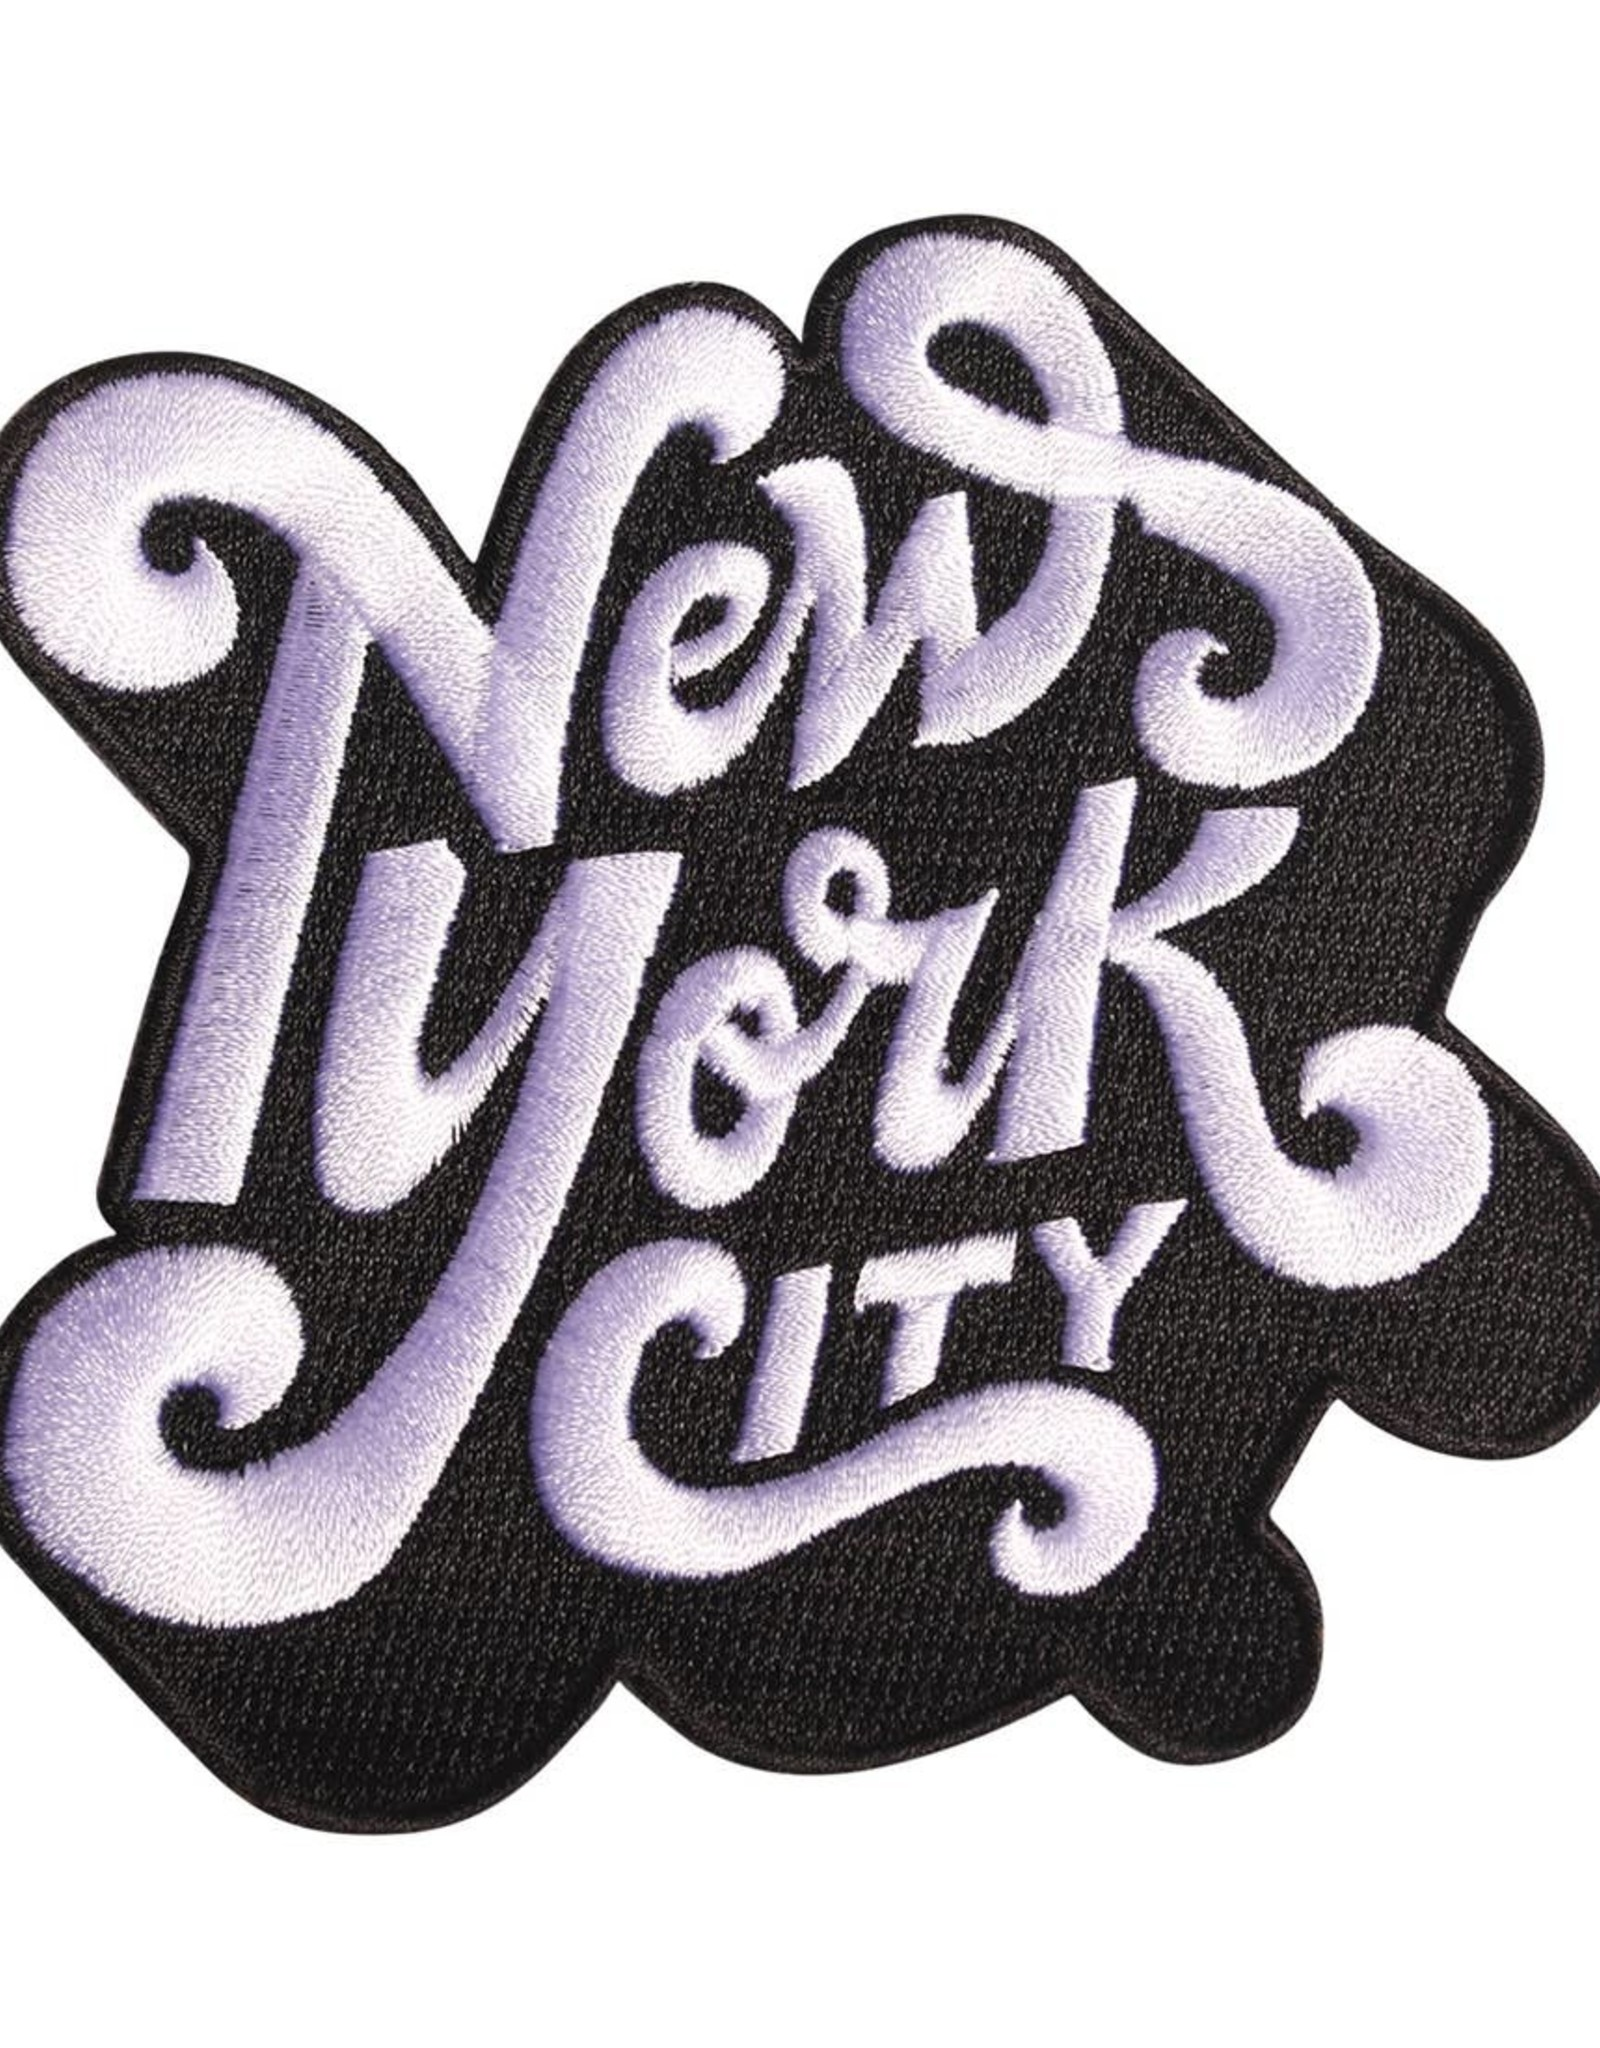 Patch: New York City B&W